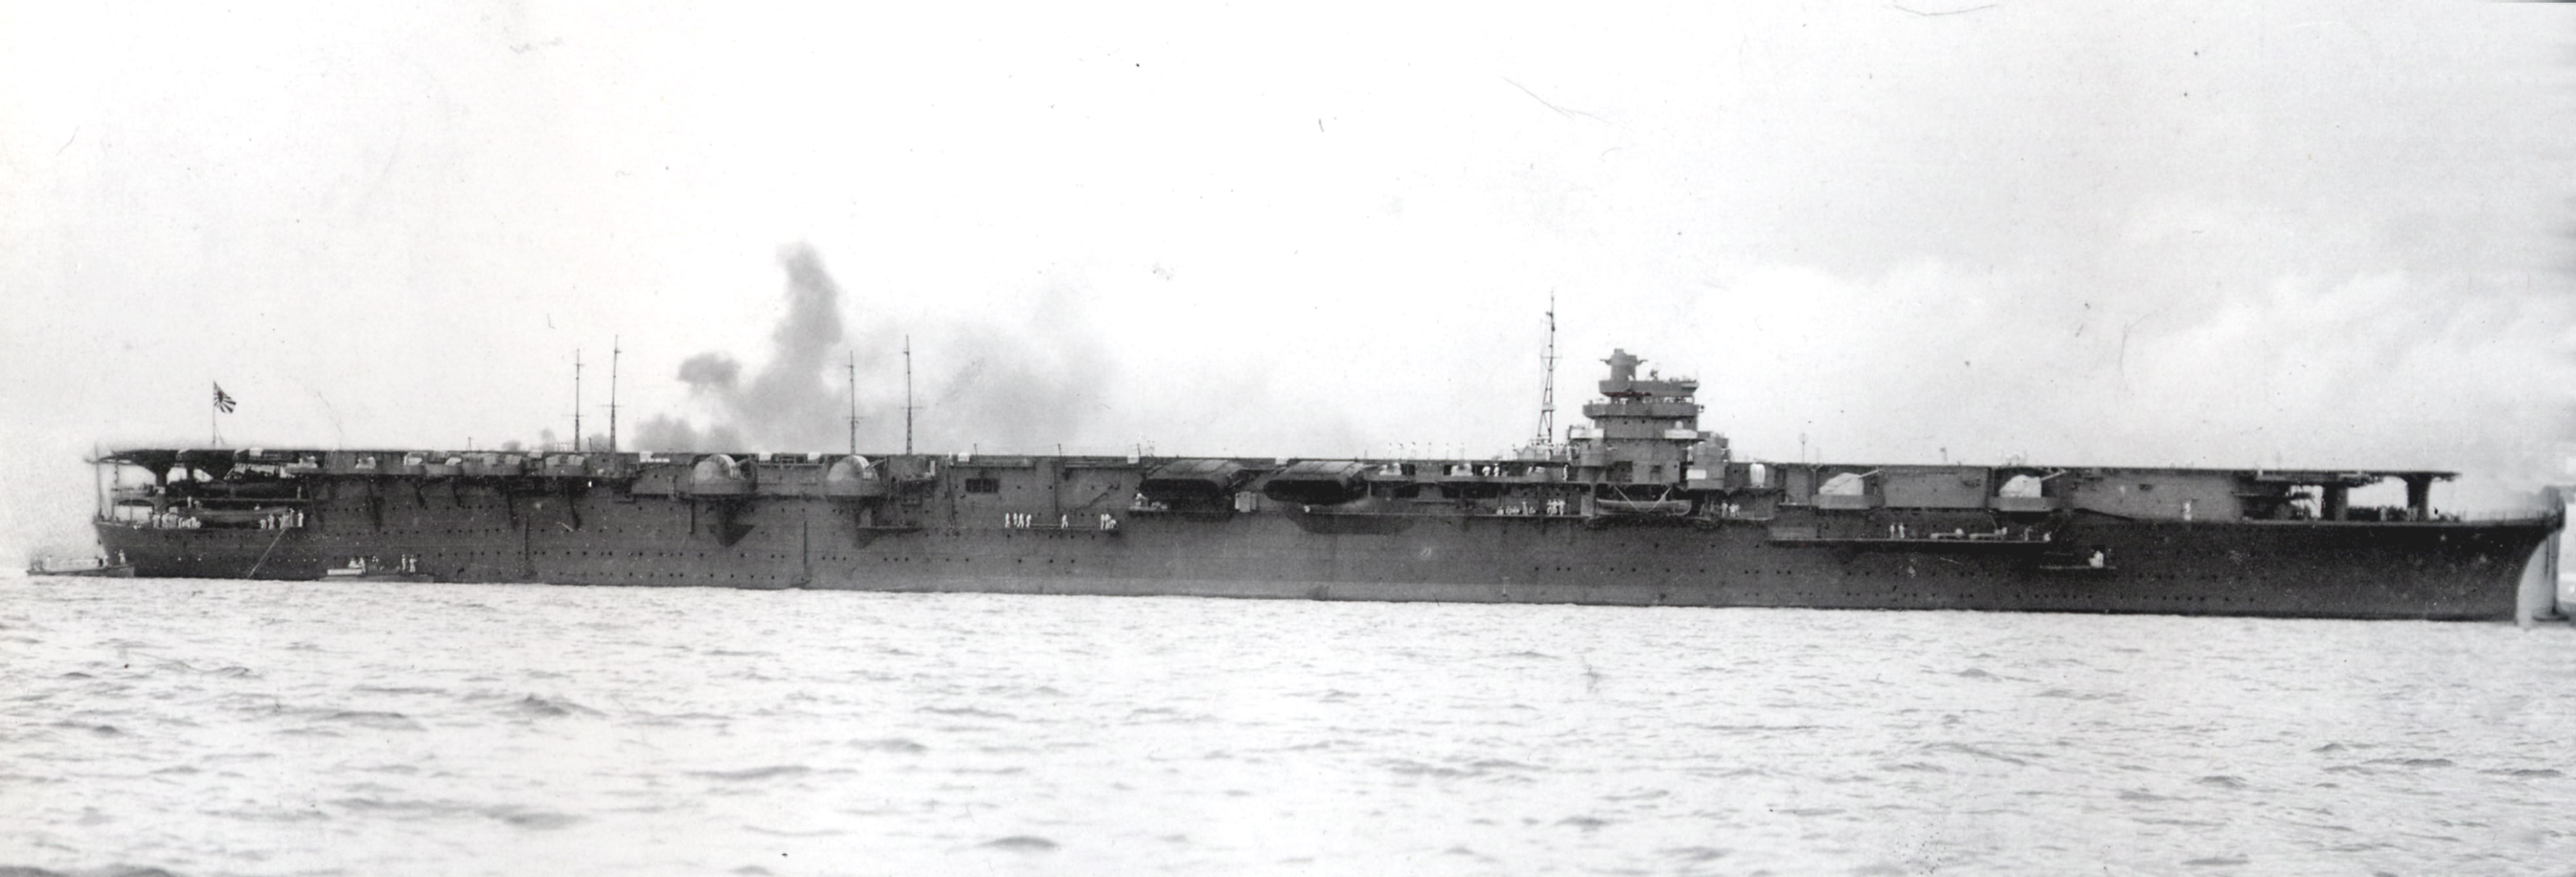 Japanese_aircraft_carrier_shokaku_1941